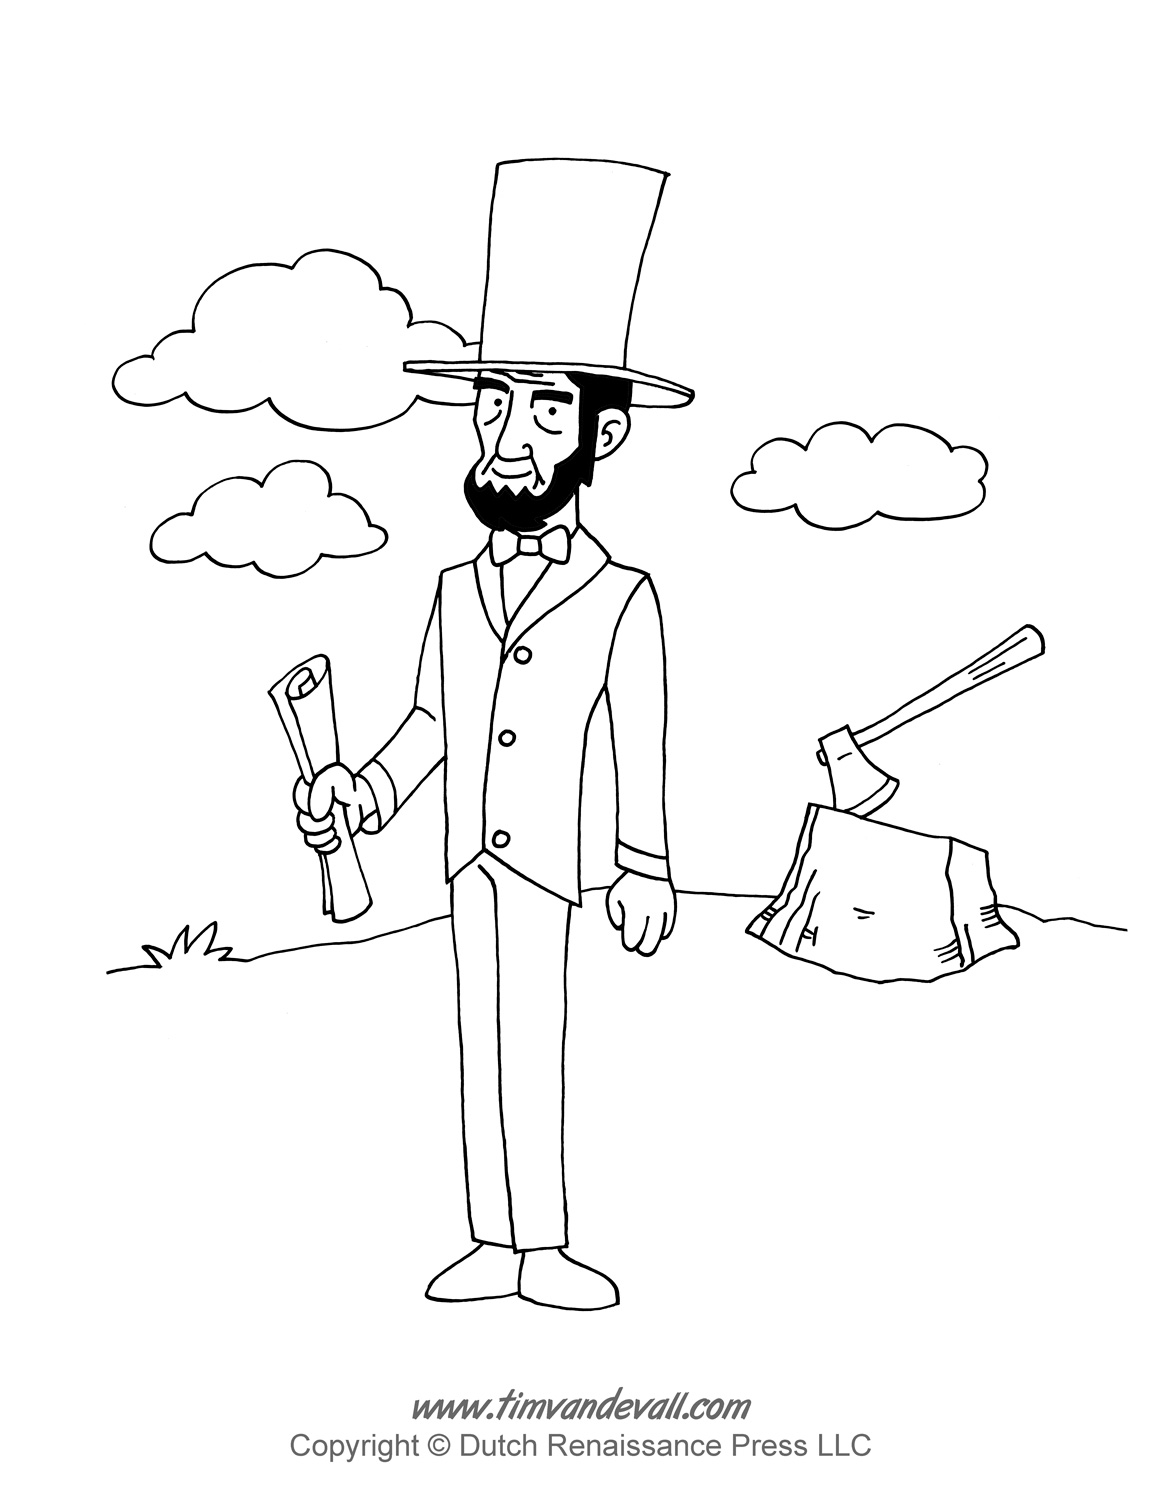 abraham lincoln coloring pages tim van de vall comics printables for kids lincoln coloring pages abraham